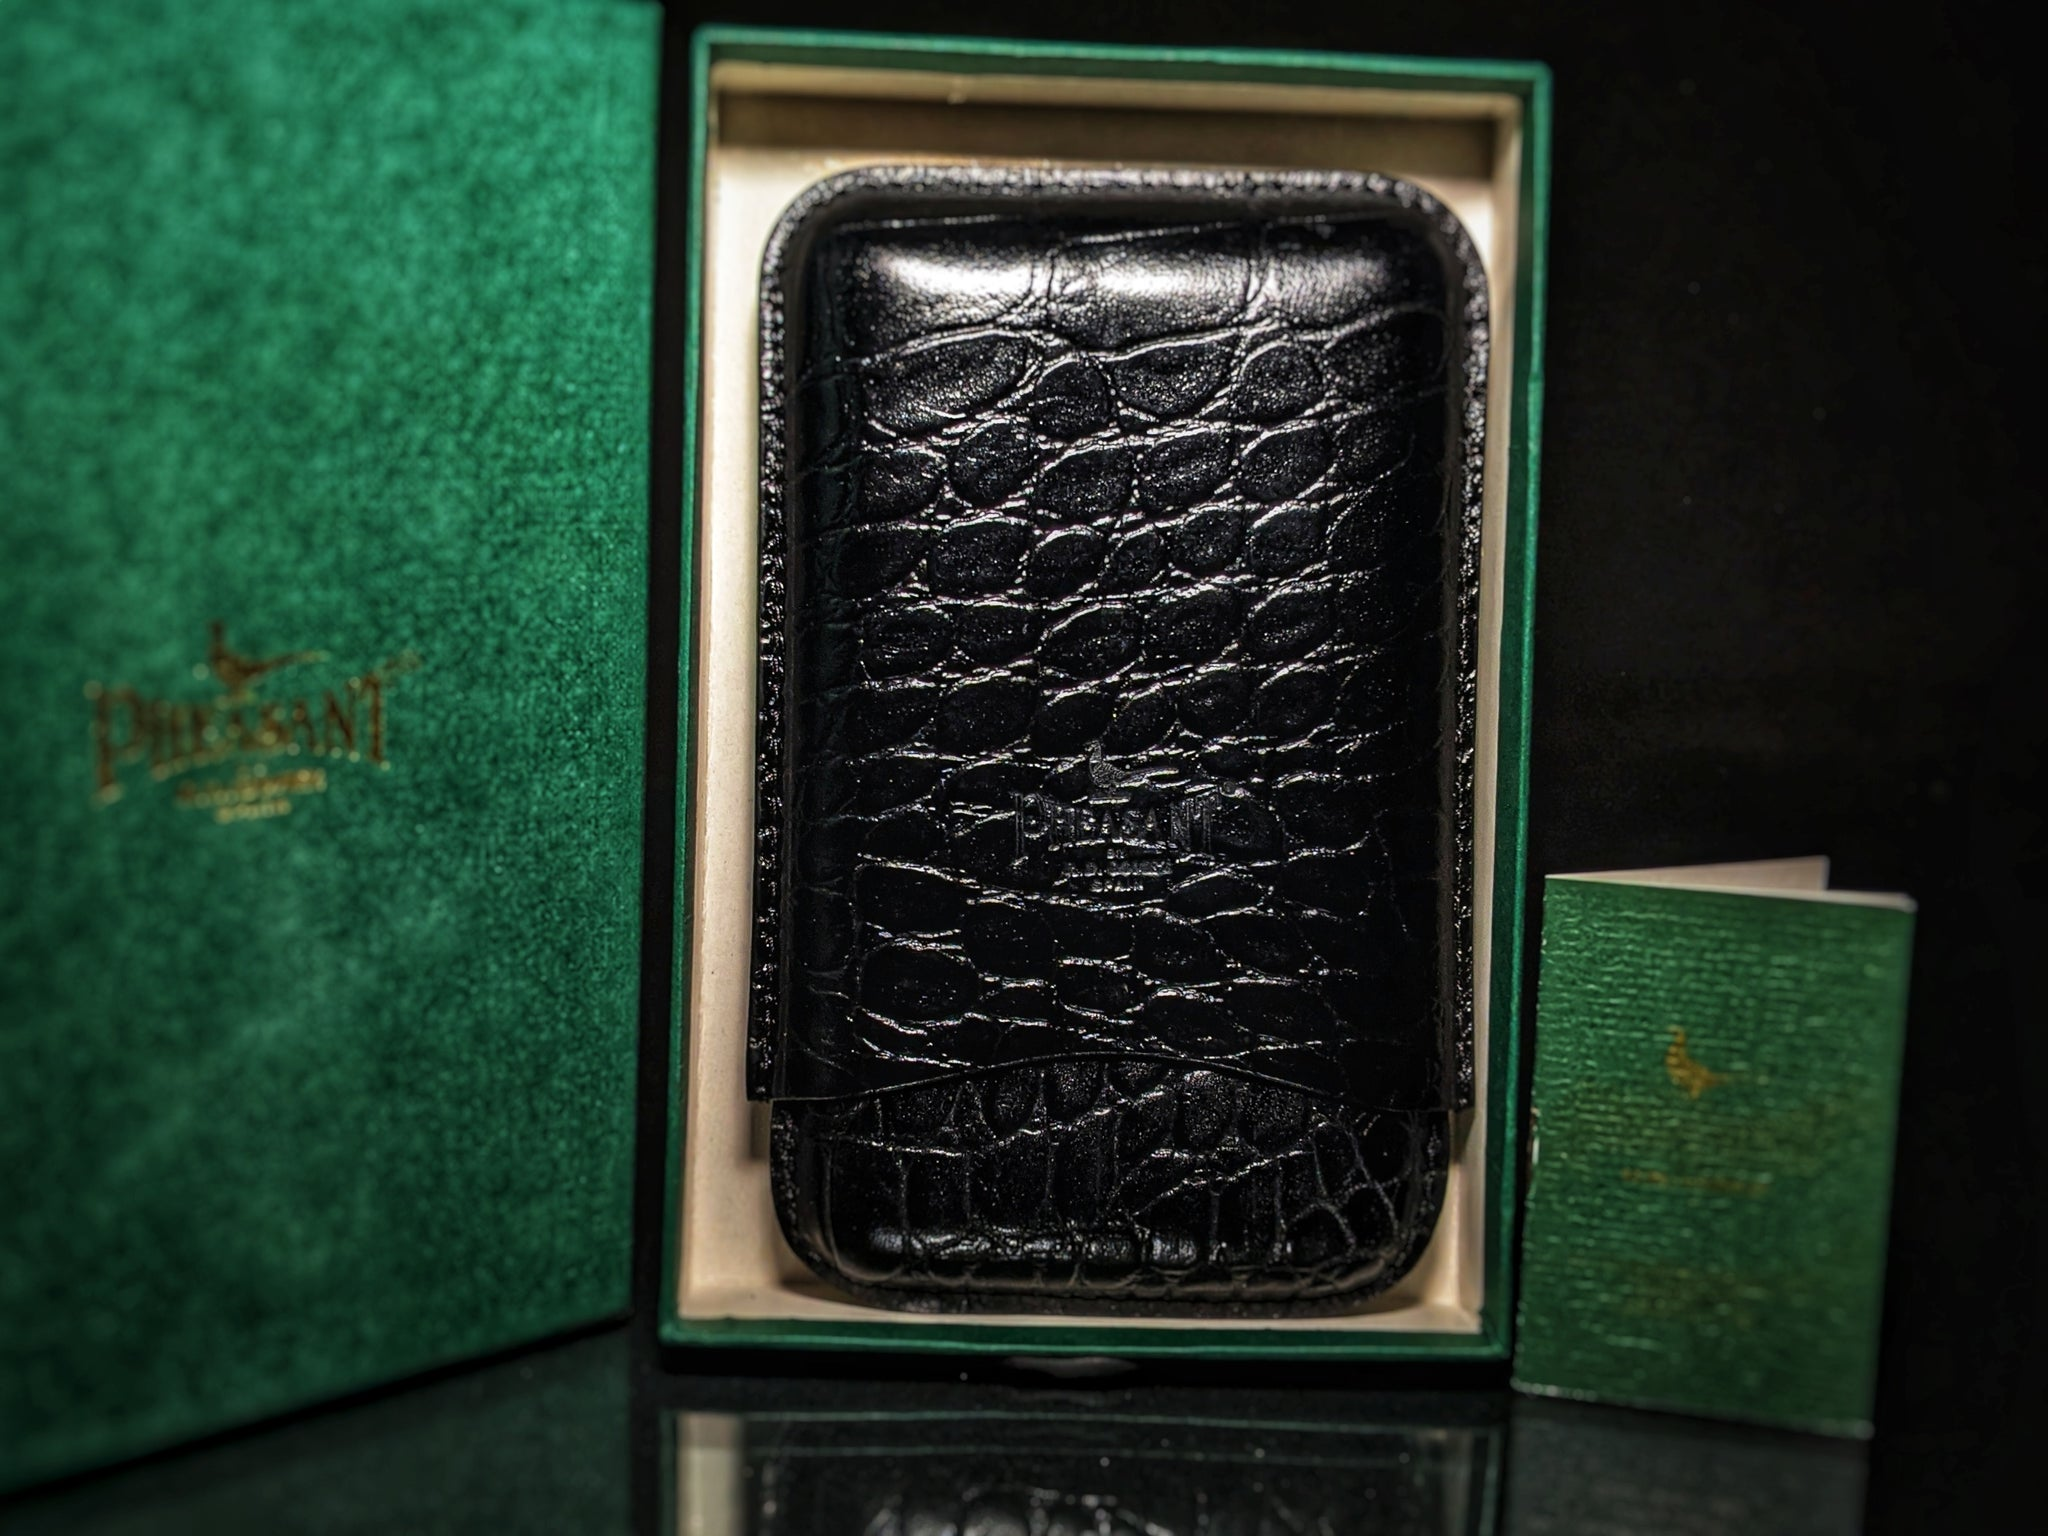 Pheasant by R.D.Gomez made in Spain Black Case new in the original box